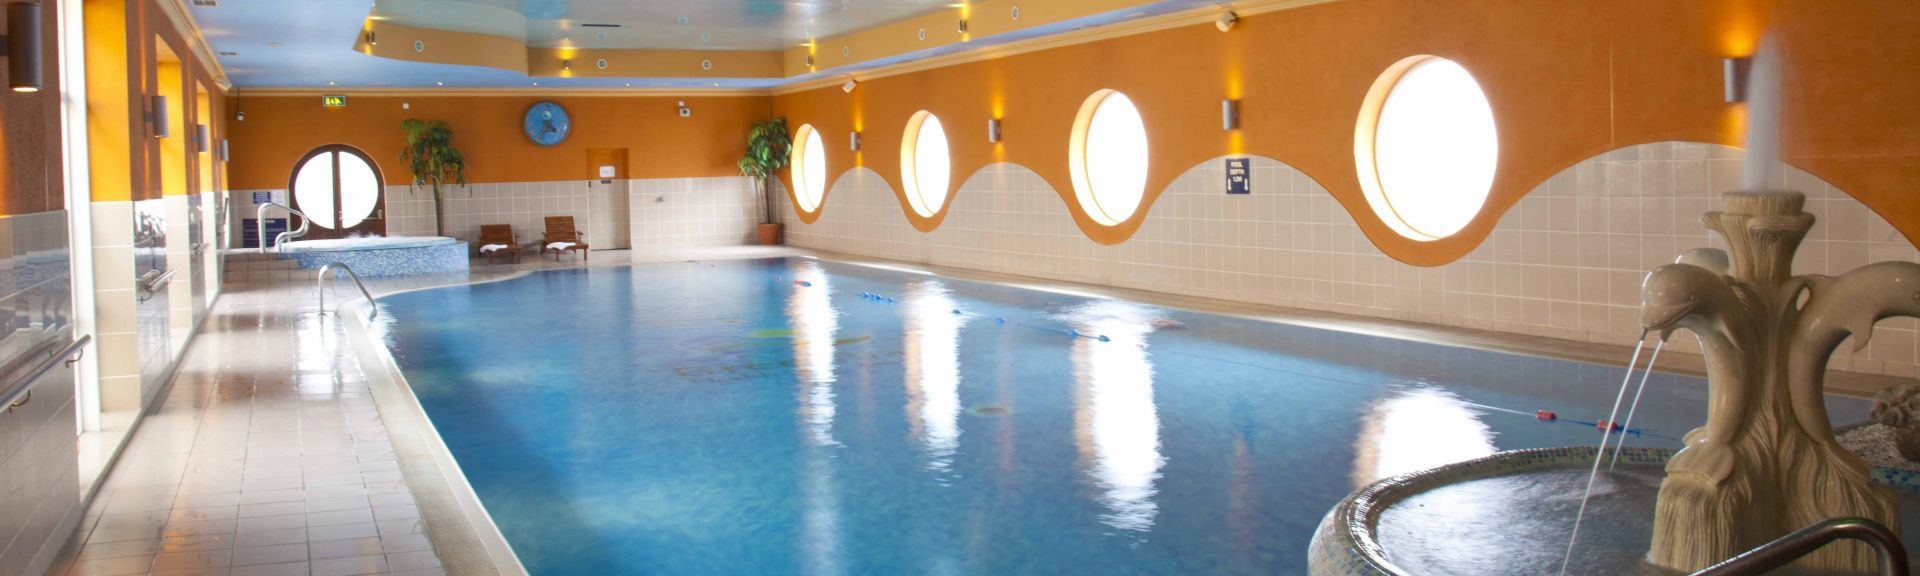 Hotel With Leisure Club Leisure Club Carlow Seven Oaks Hotel Carlow